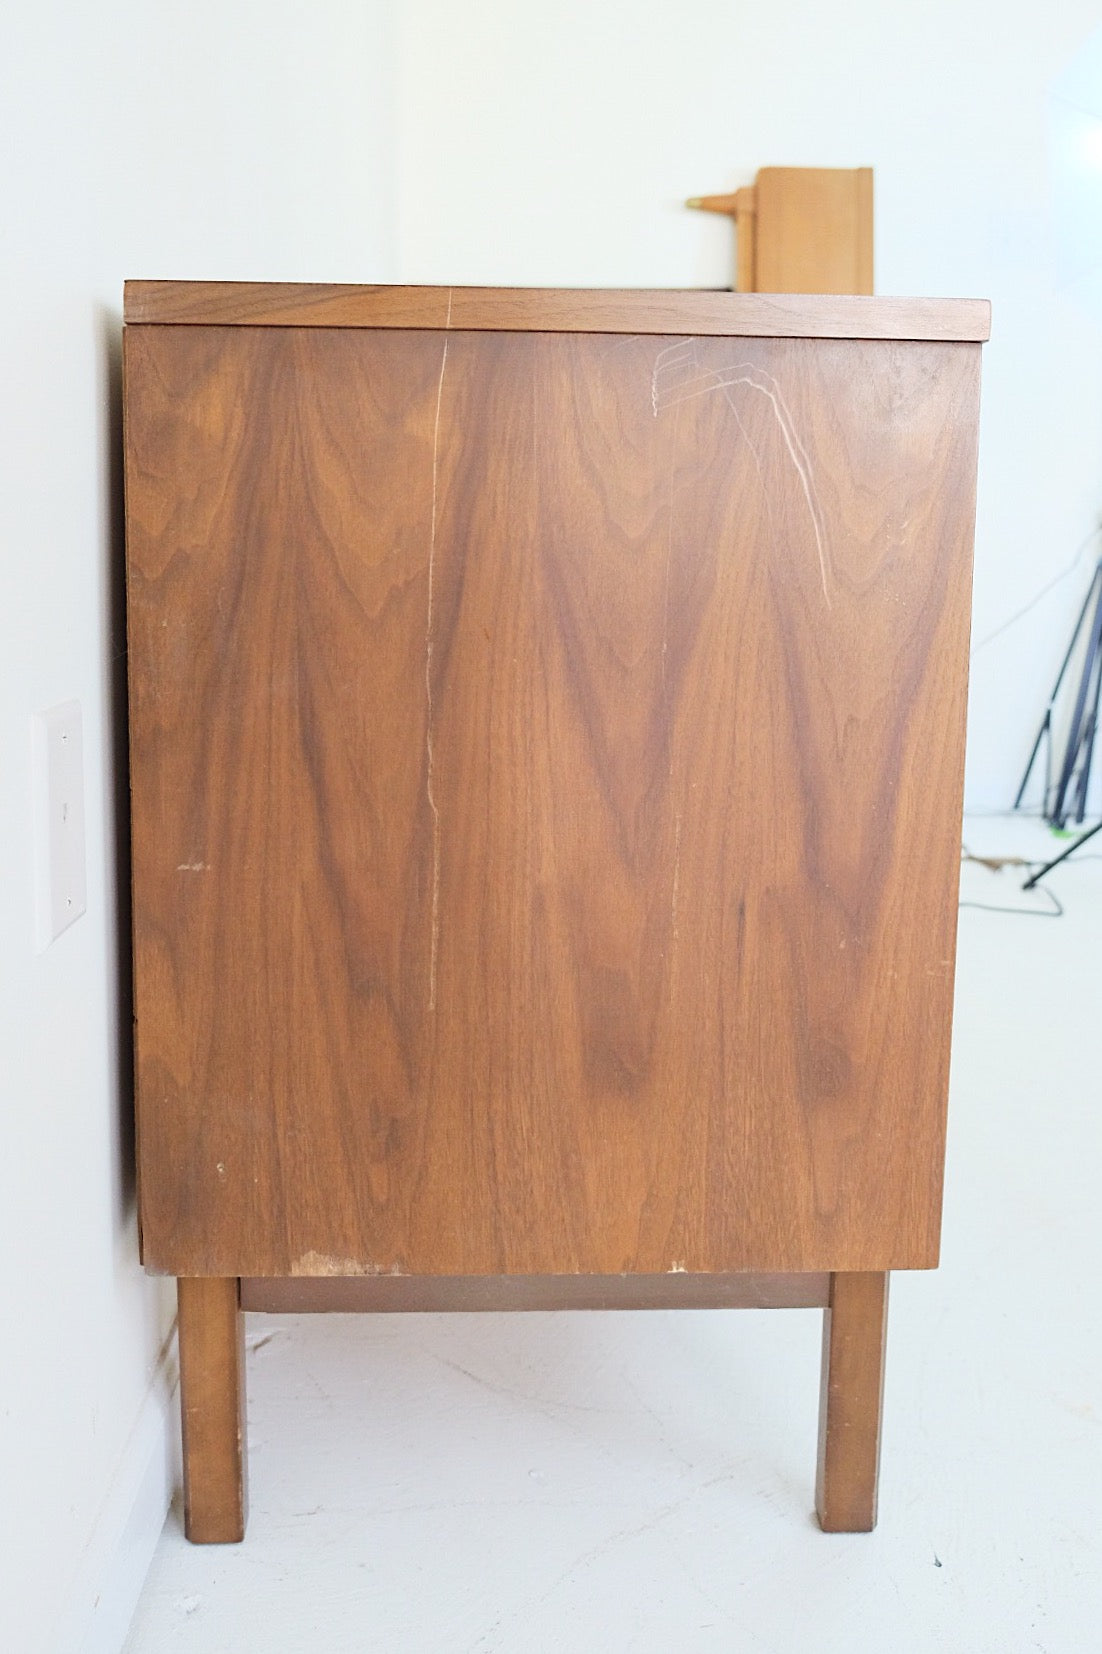 Cane Door Cabinet Mid Century Modern Brass Pulls Entryway TV Stand Media Center